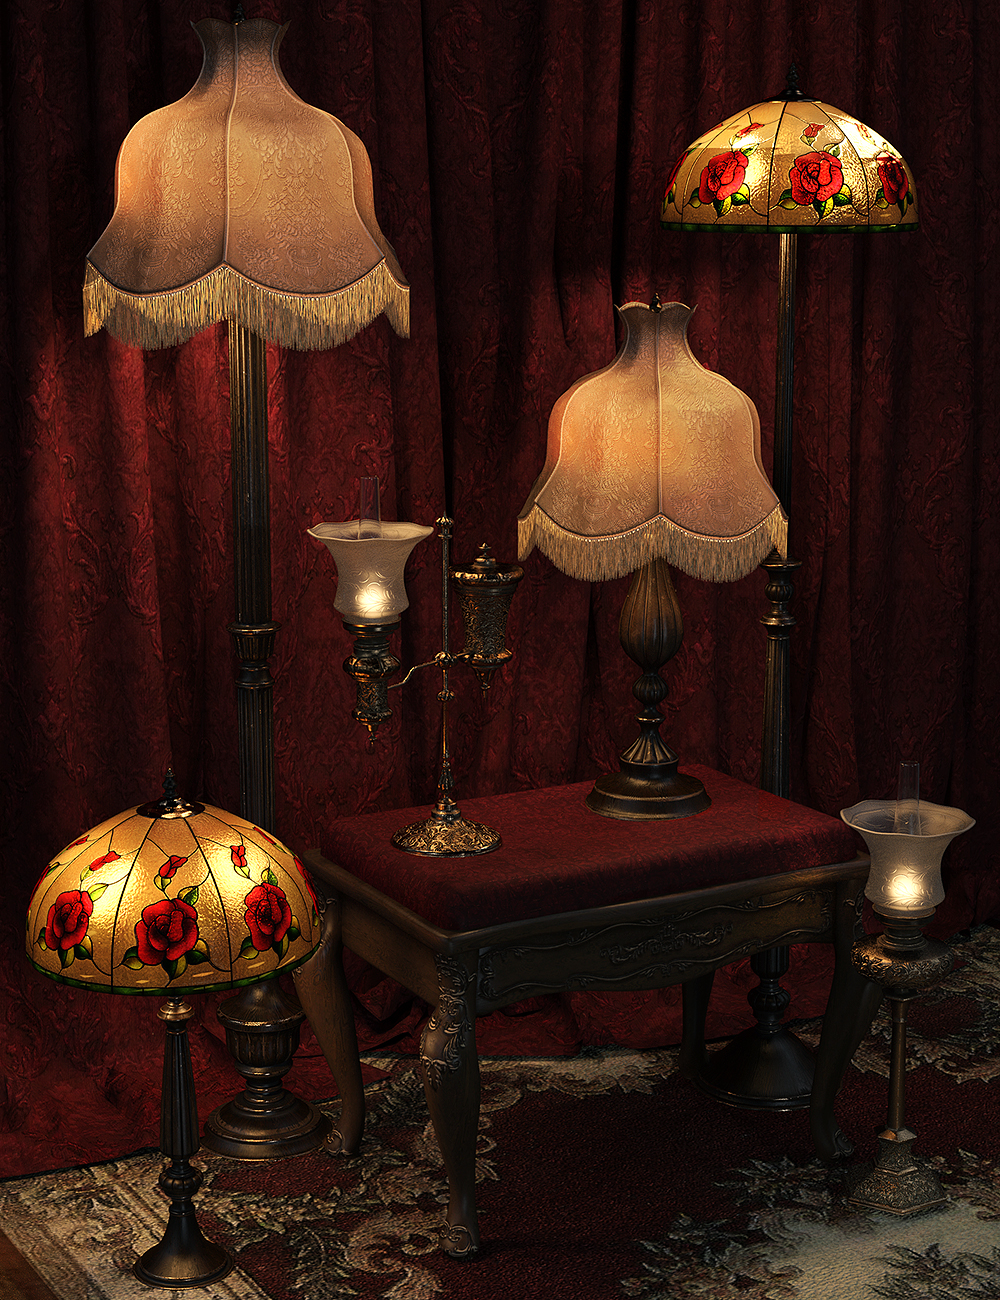 Vintage Lamps Iray by: LaurieS, 3D Models by Daz 3D